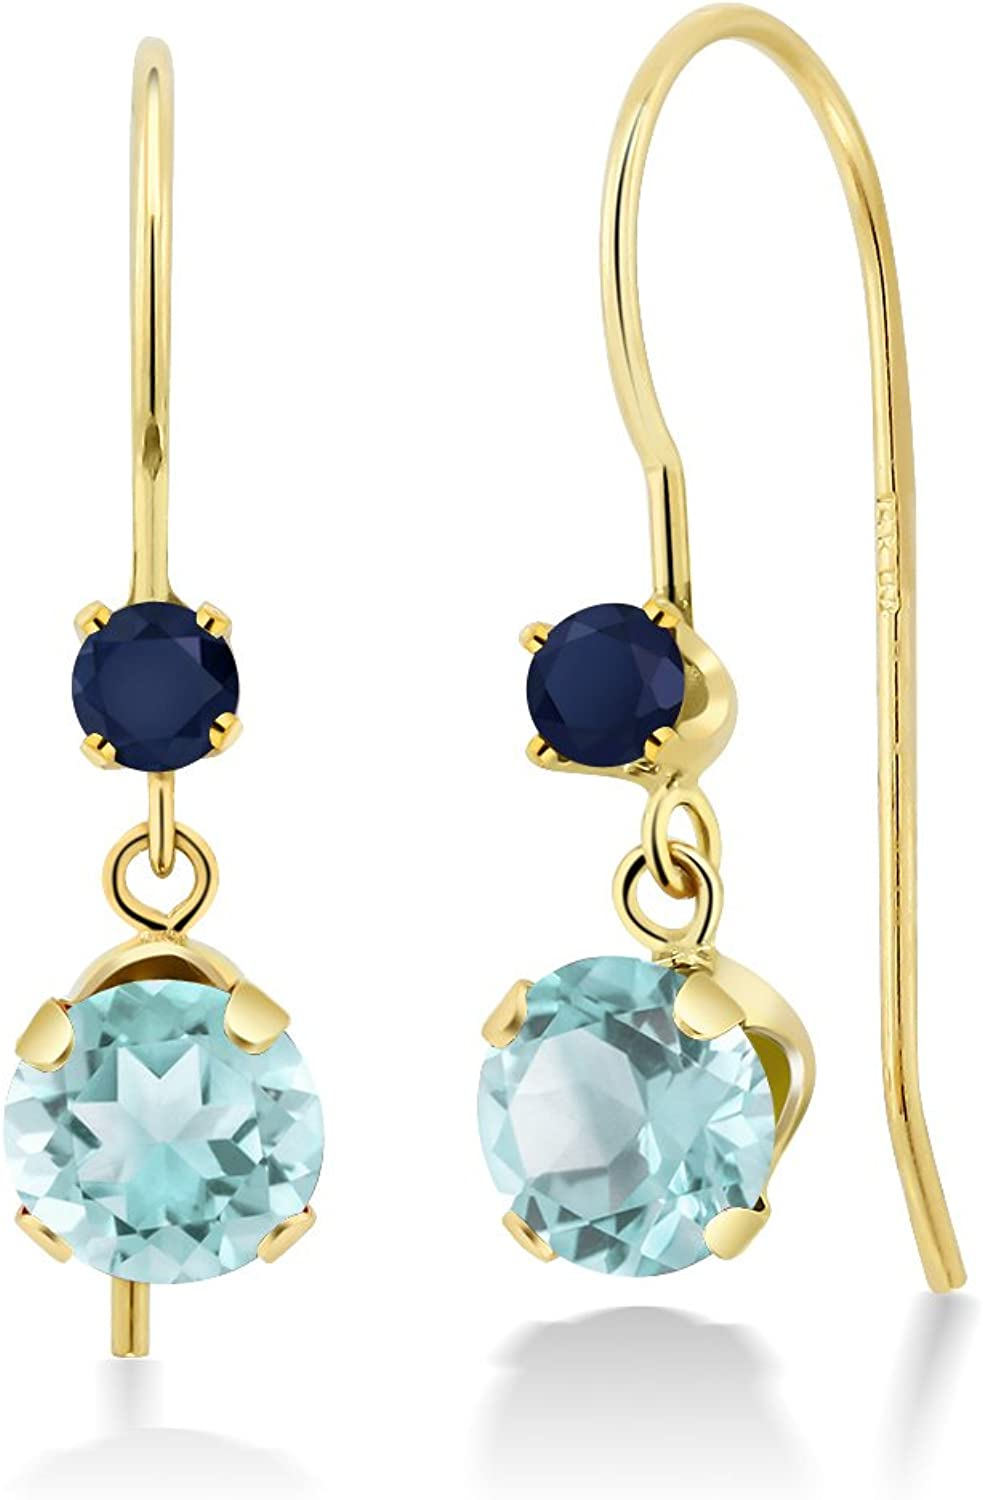 1.56 Ct Round Sky bluee Topaz bluee Sapphire 14K Yellow gold Earrings